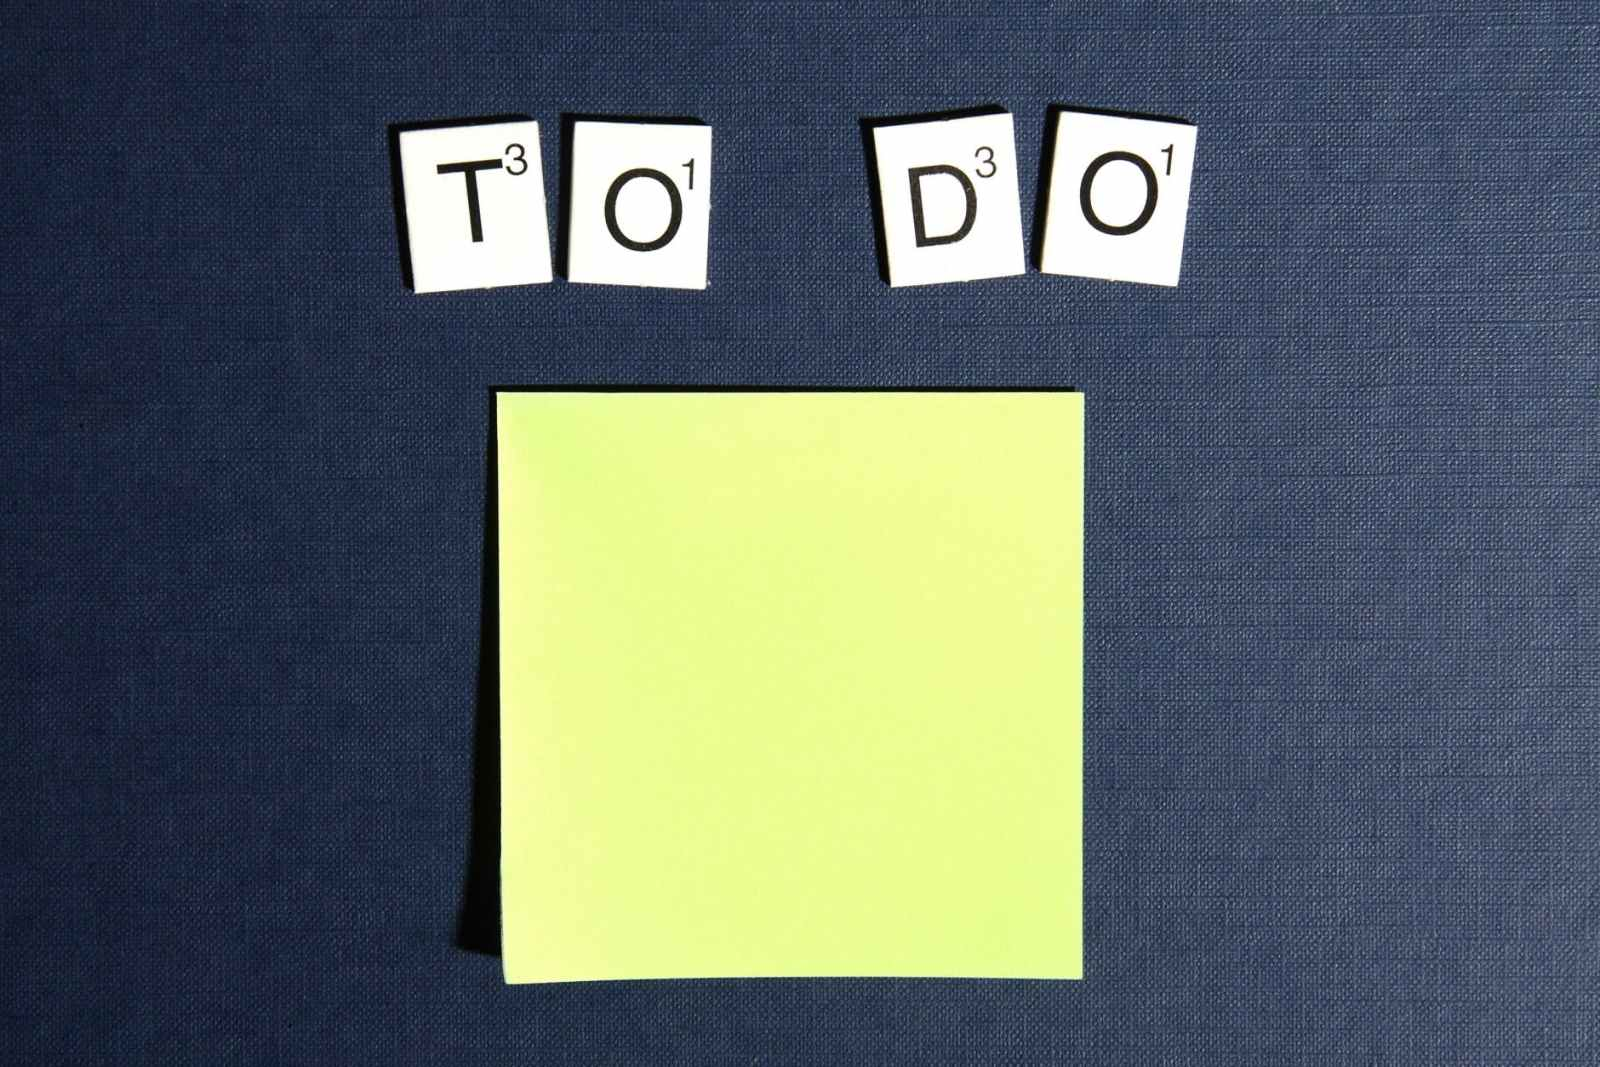 postit scrabble to do todo